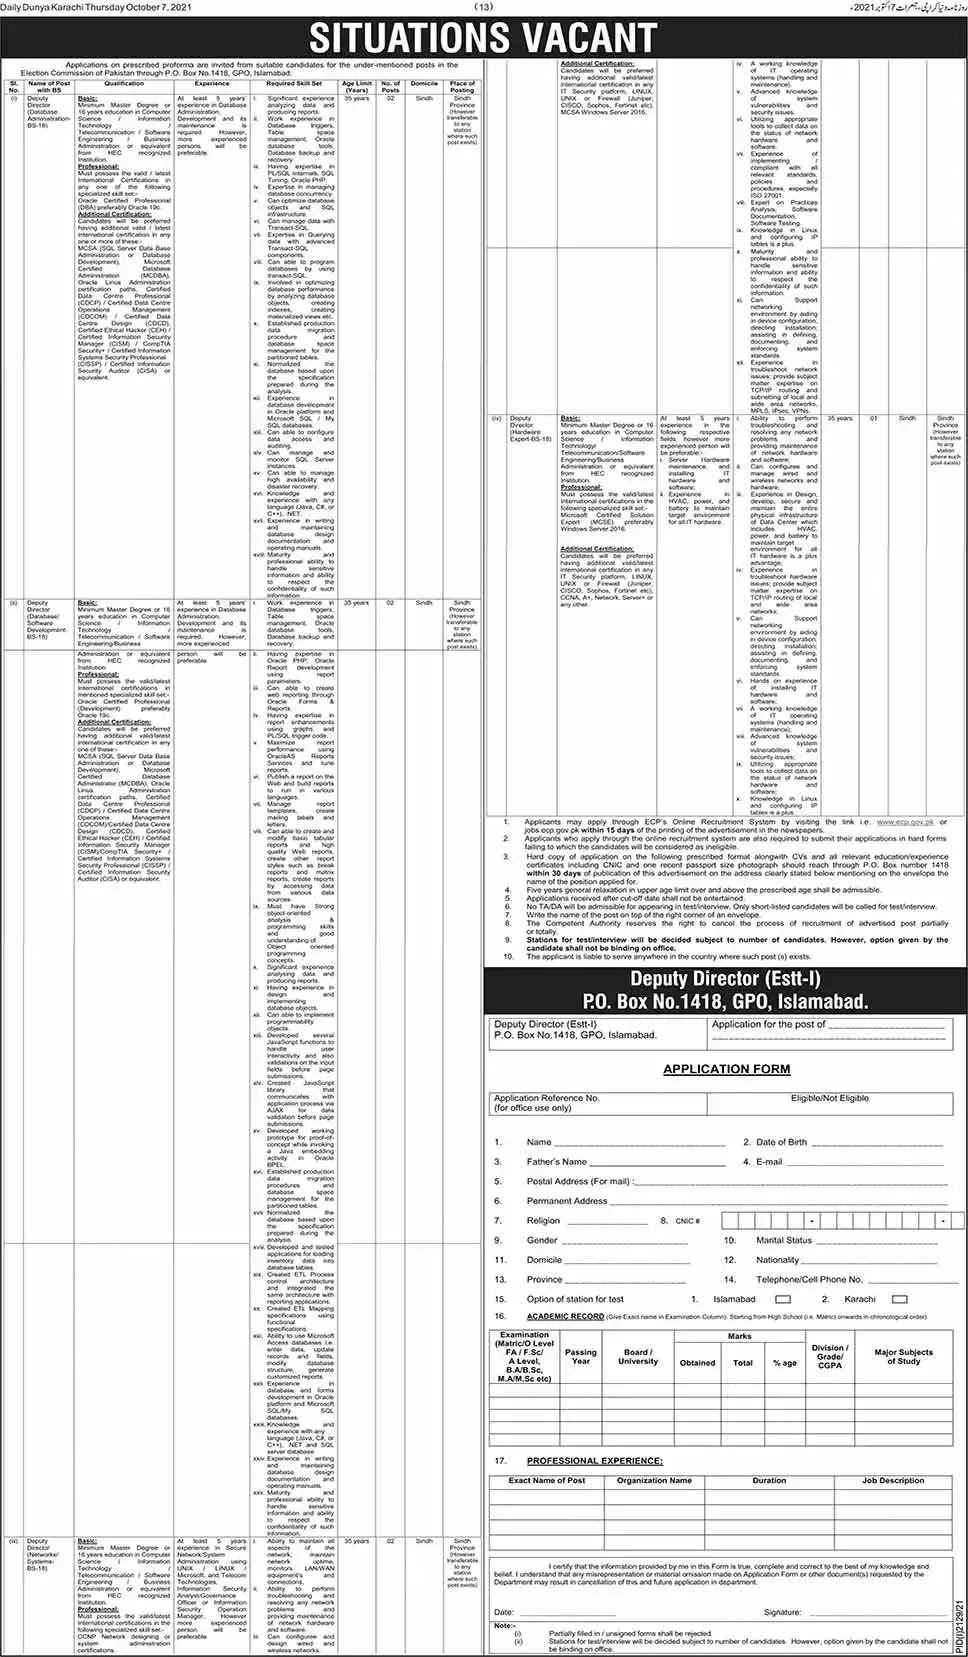 Election Commission of Pakistan ECP Islamabad Government of Pakistan Jobs 2021 | 78 Posts